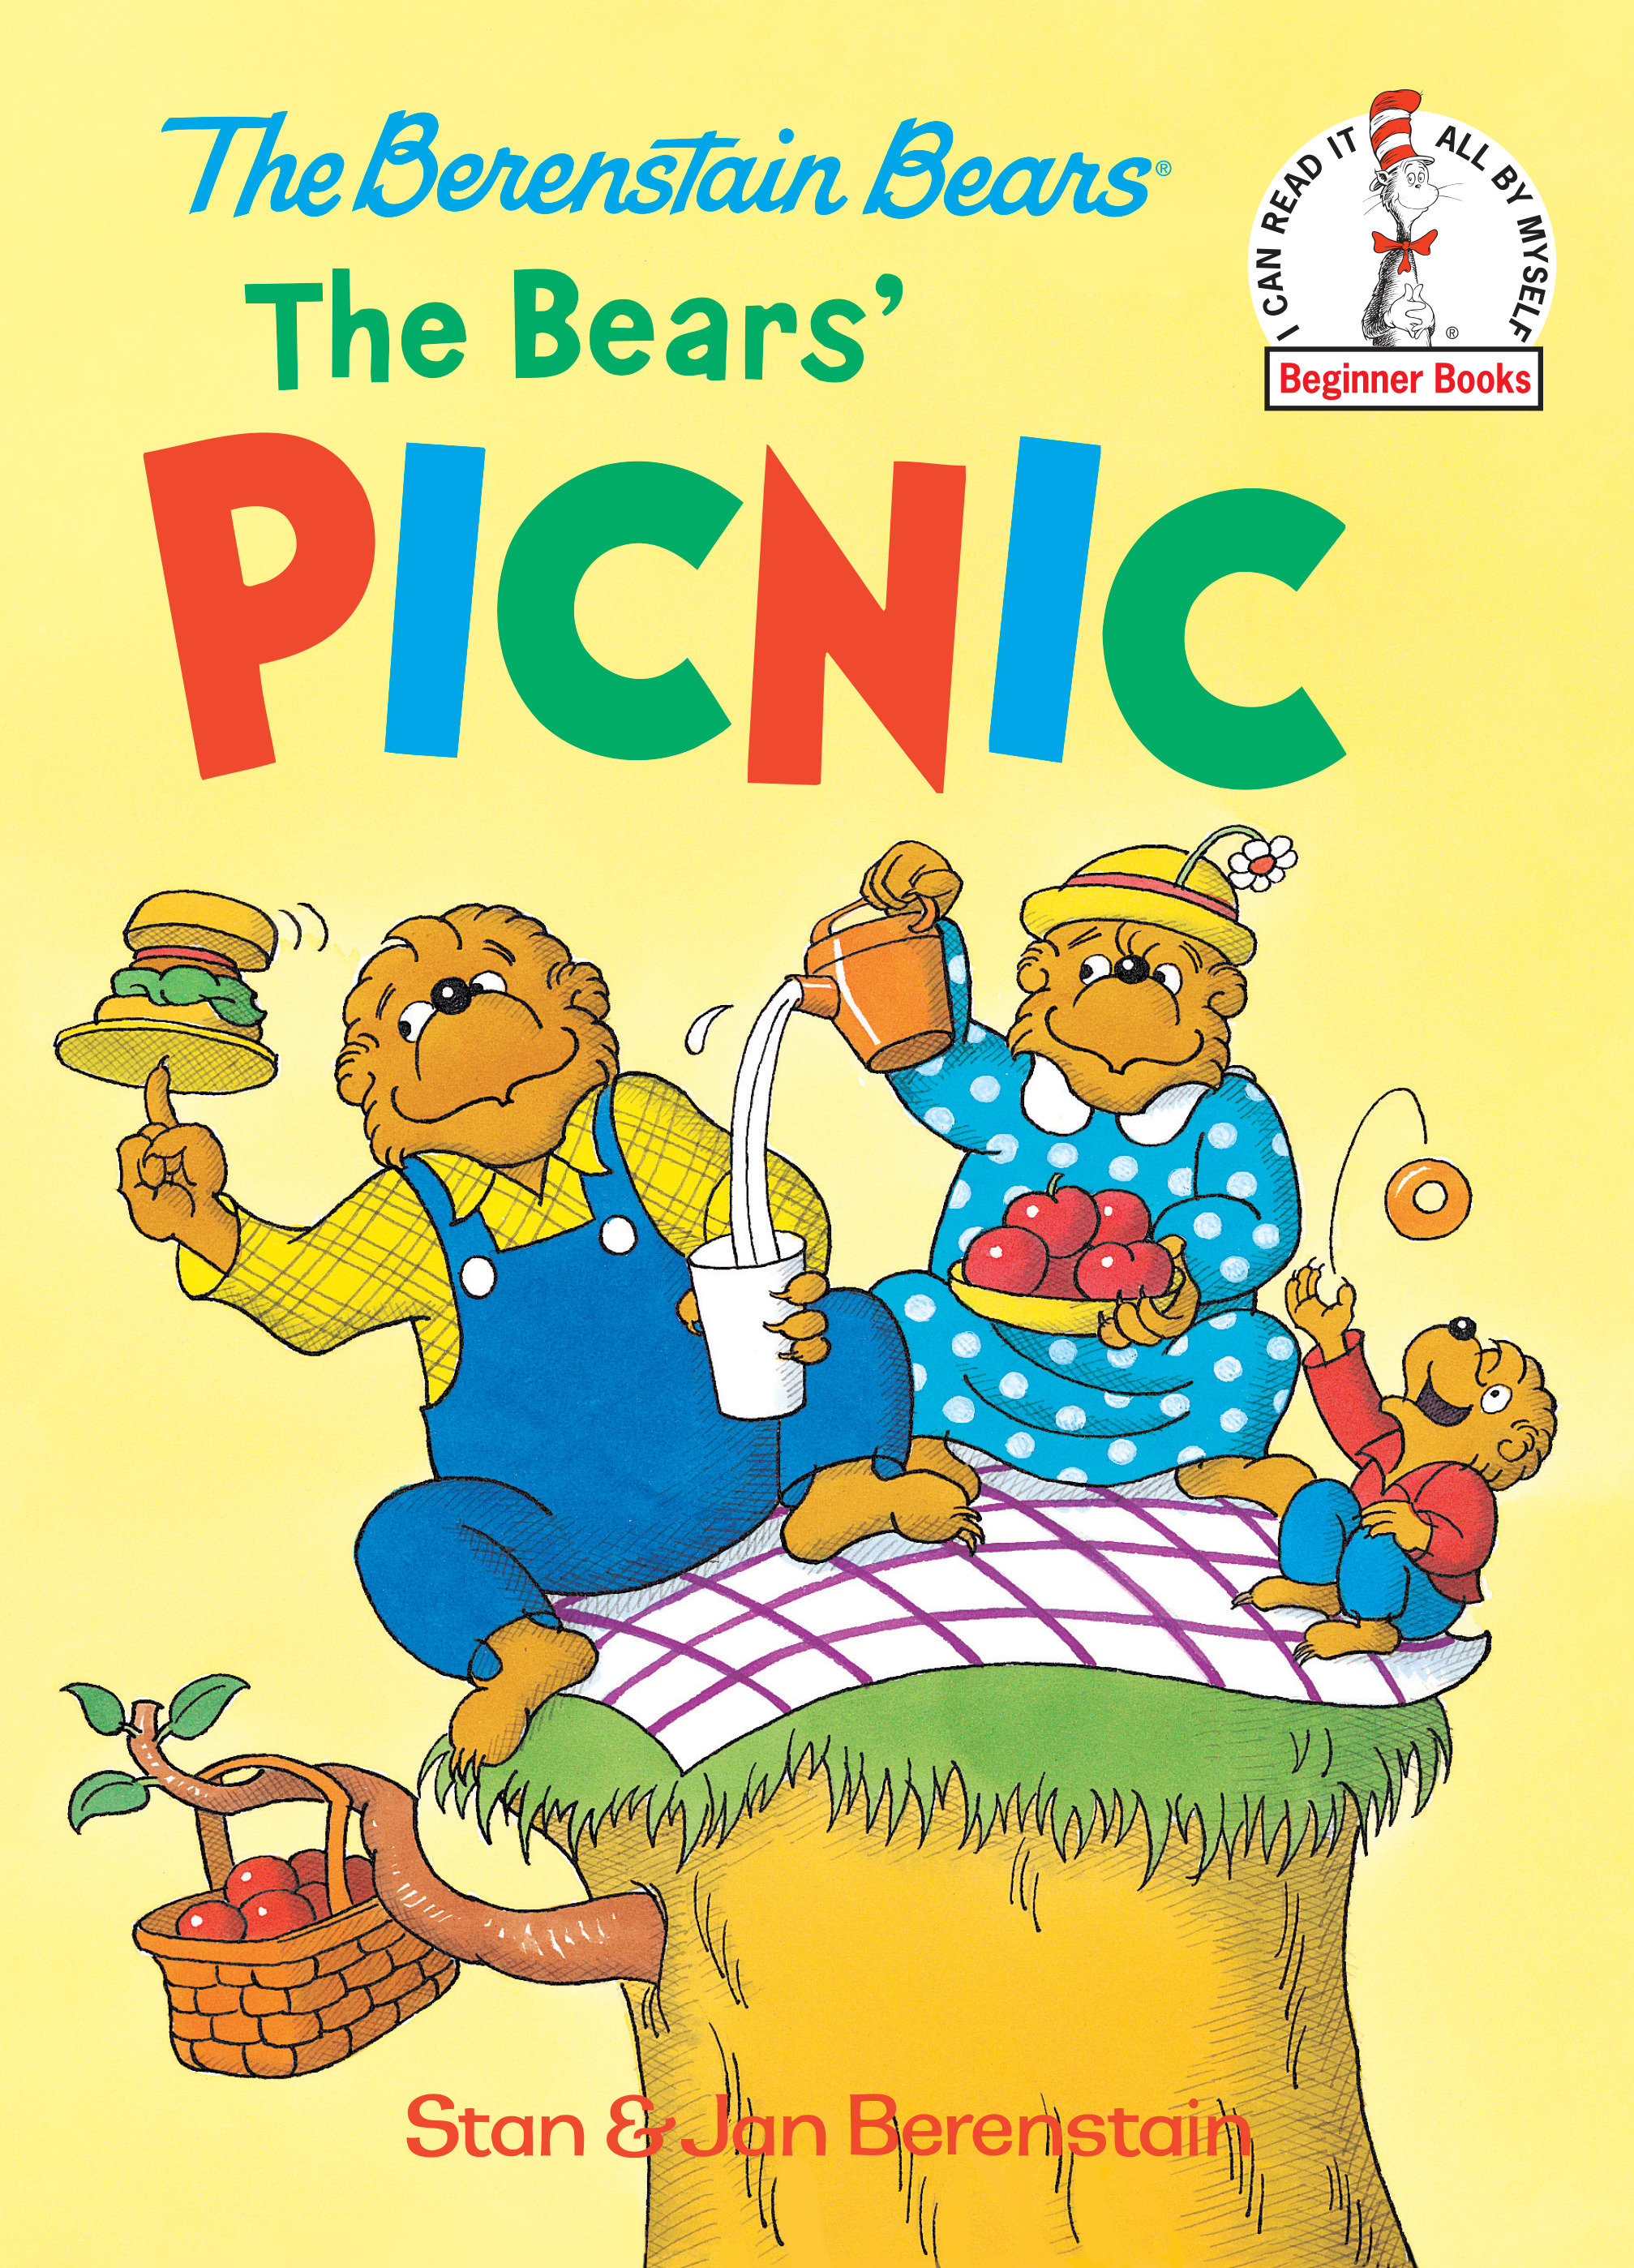 The Bears' picnic cover image